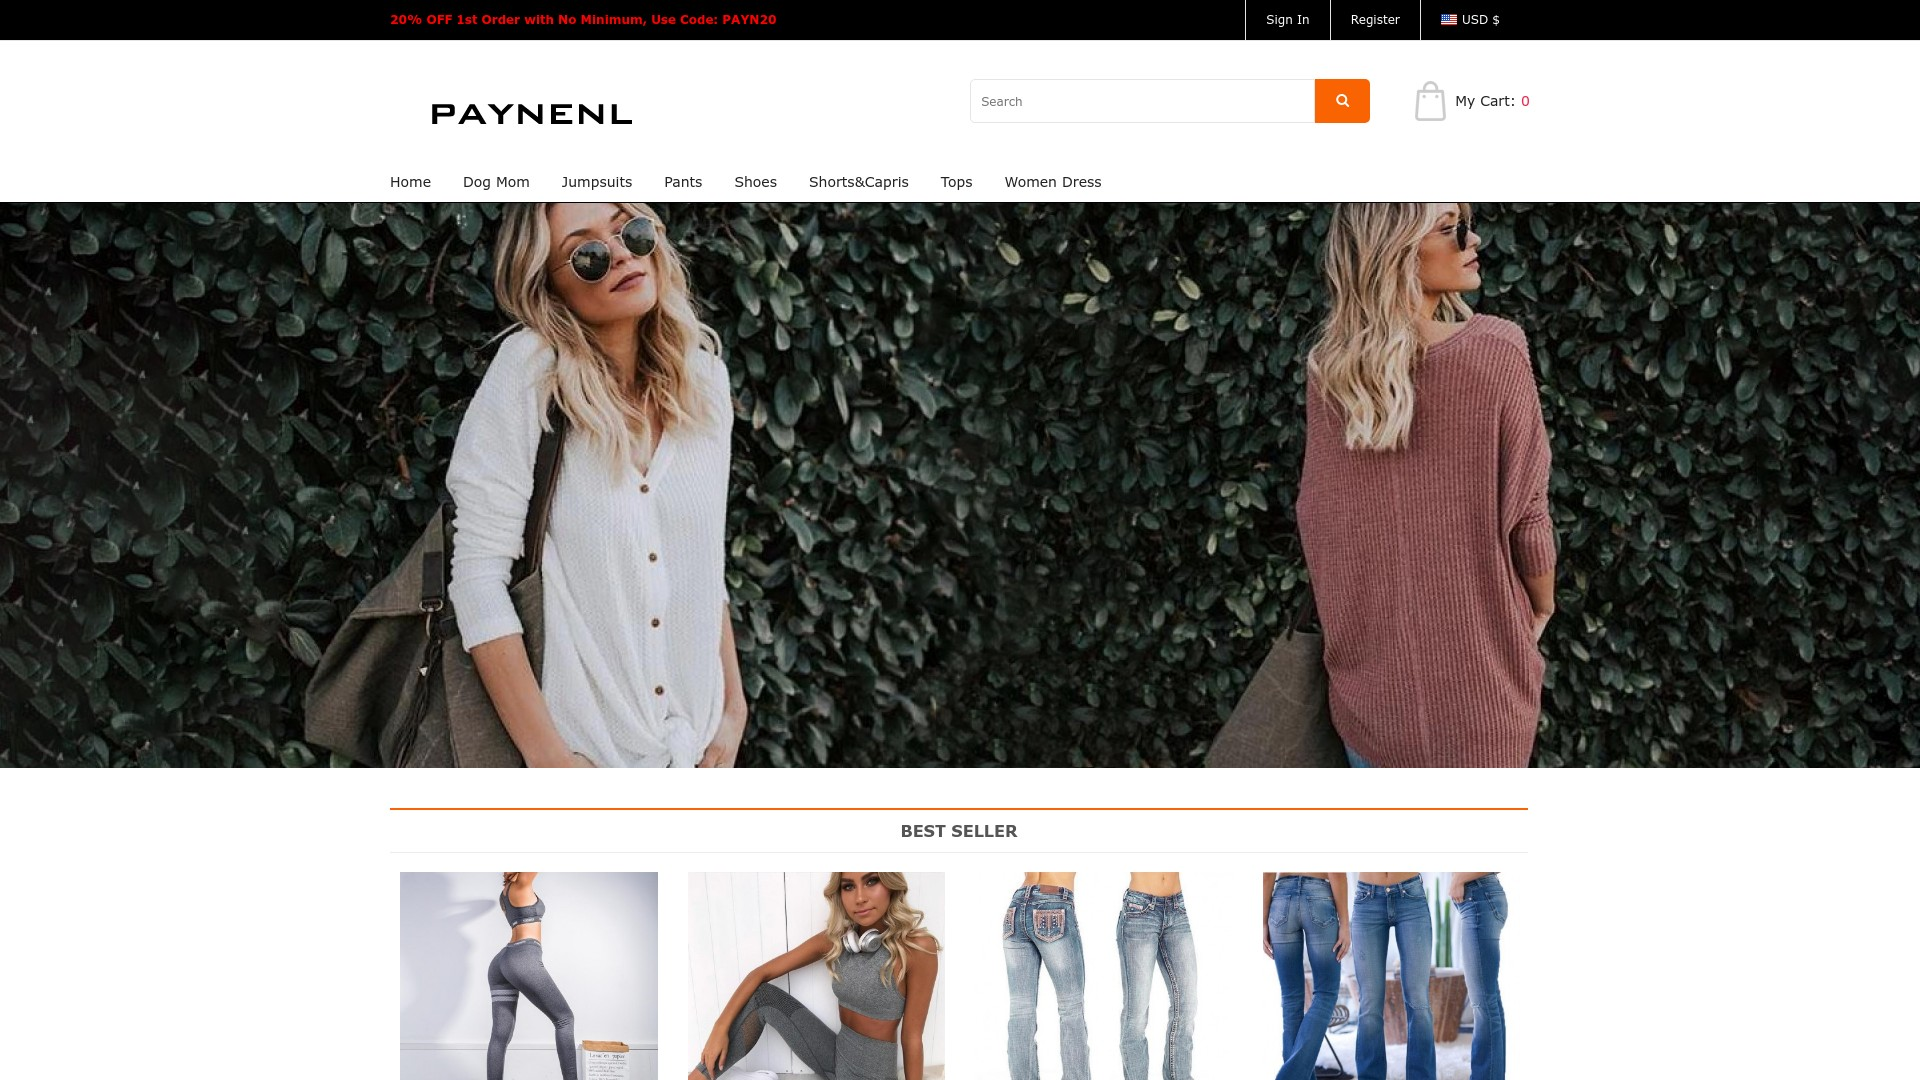 Is Paynenl a Scam? See the Review of the Online Store